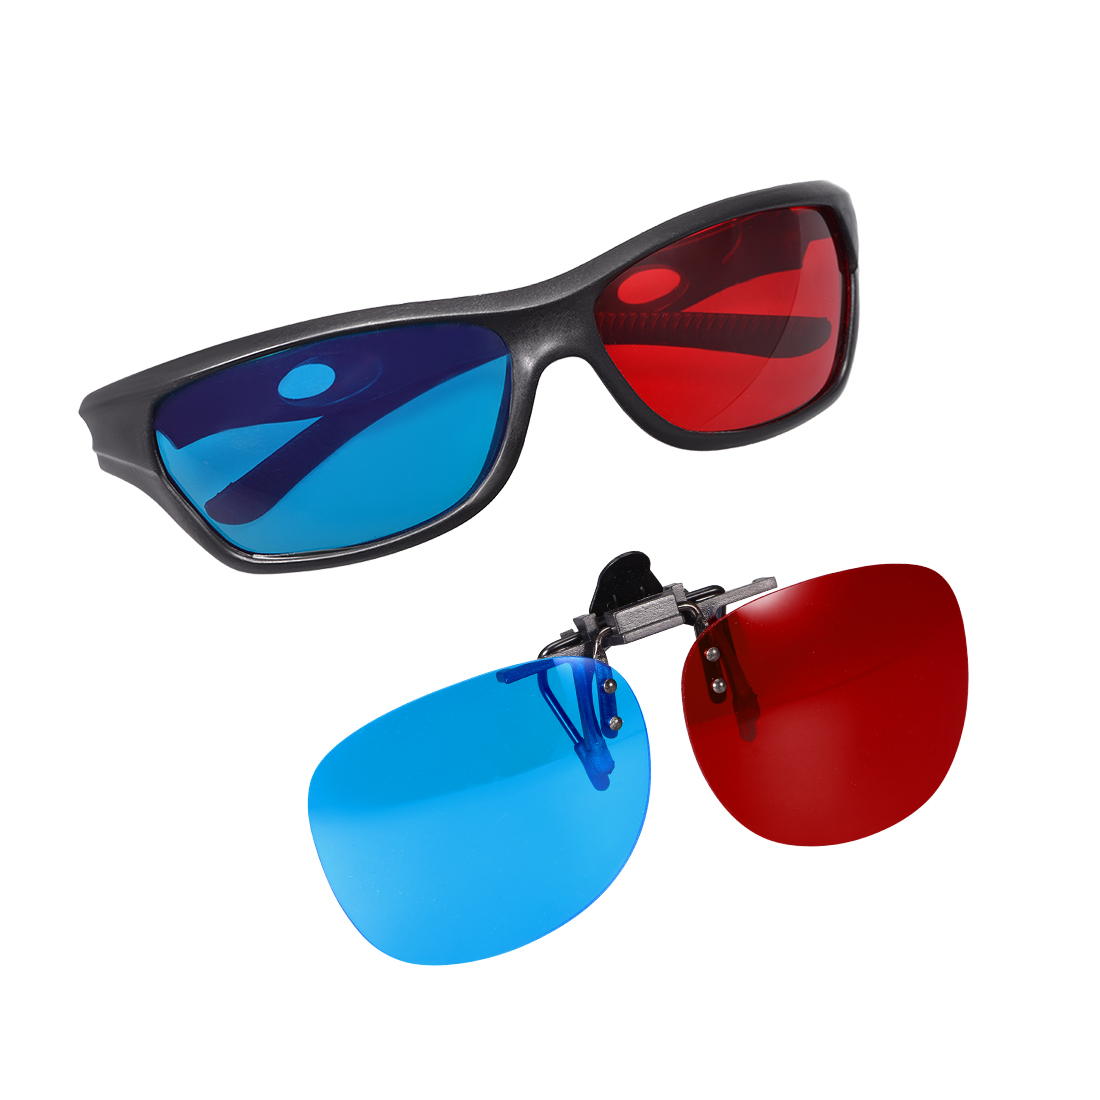 Red-Blue Anaglyph 3D Glasses and 3D Clip-on Glasses for Movies 1 set